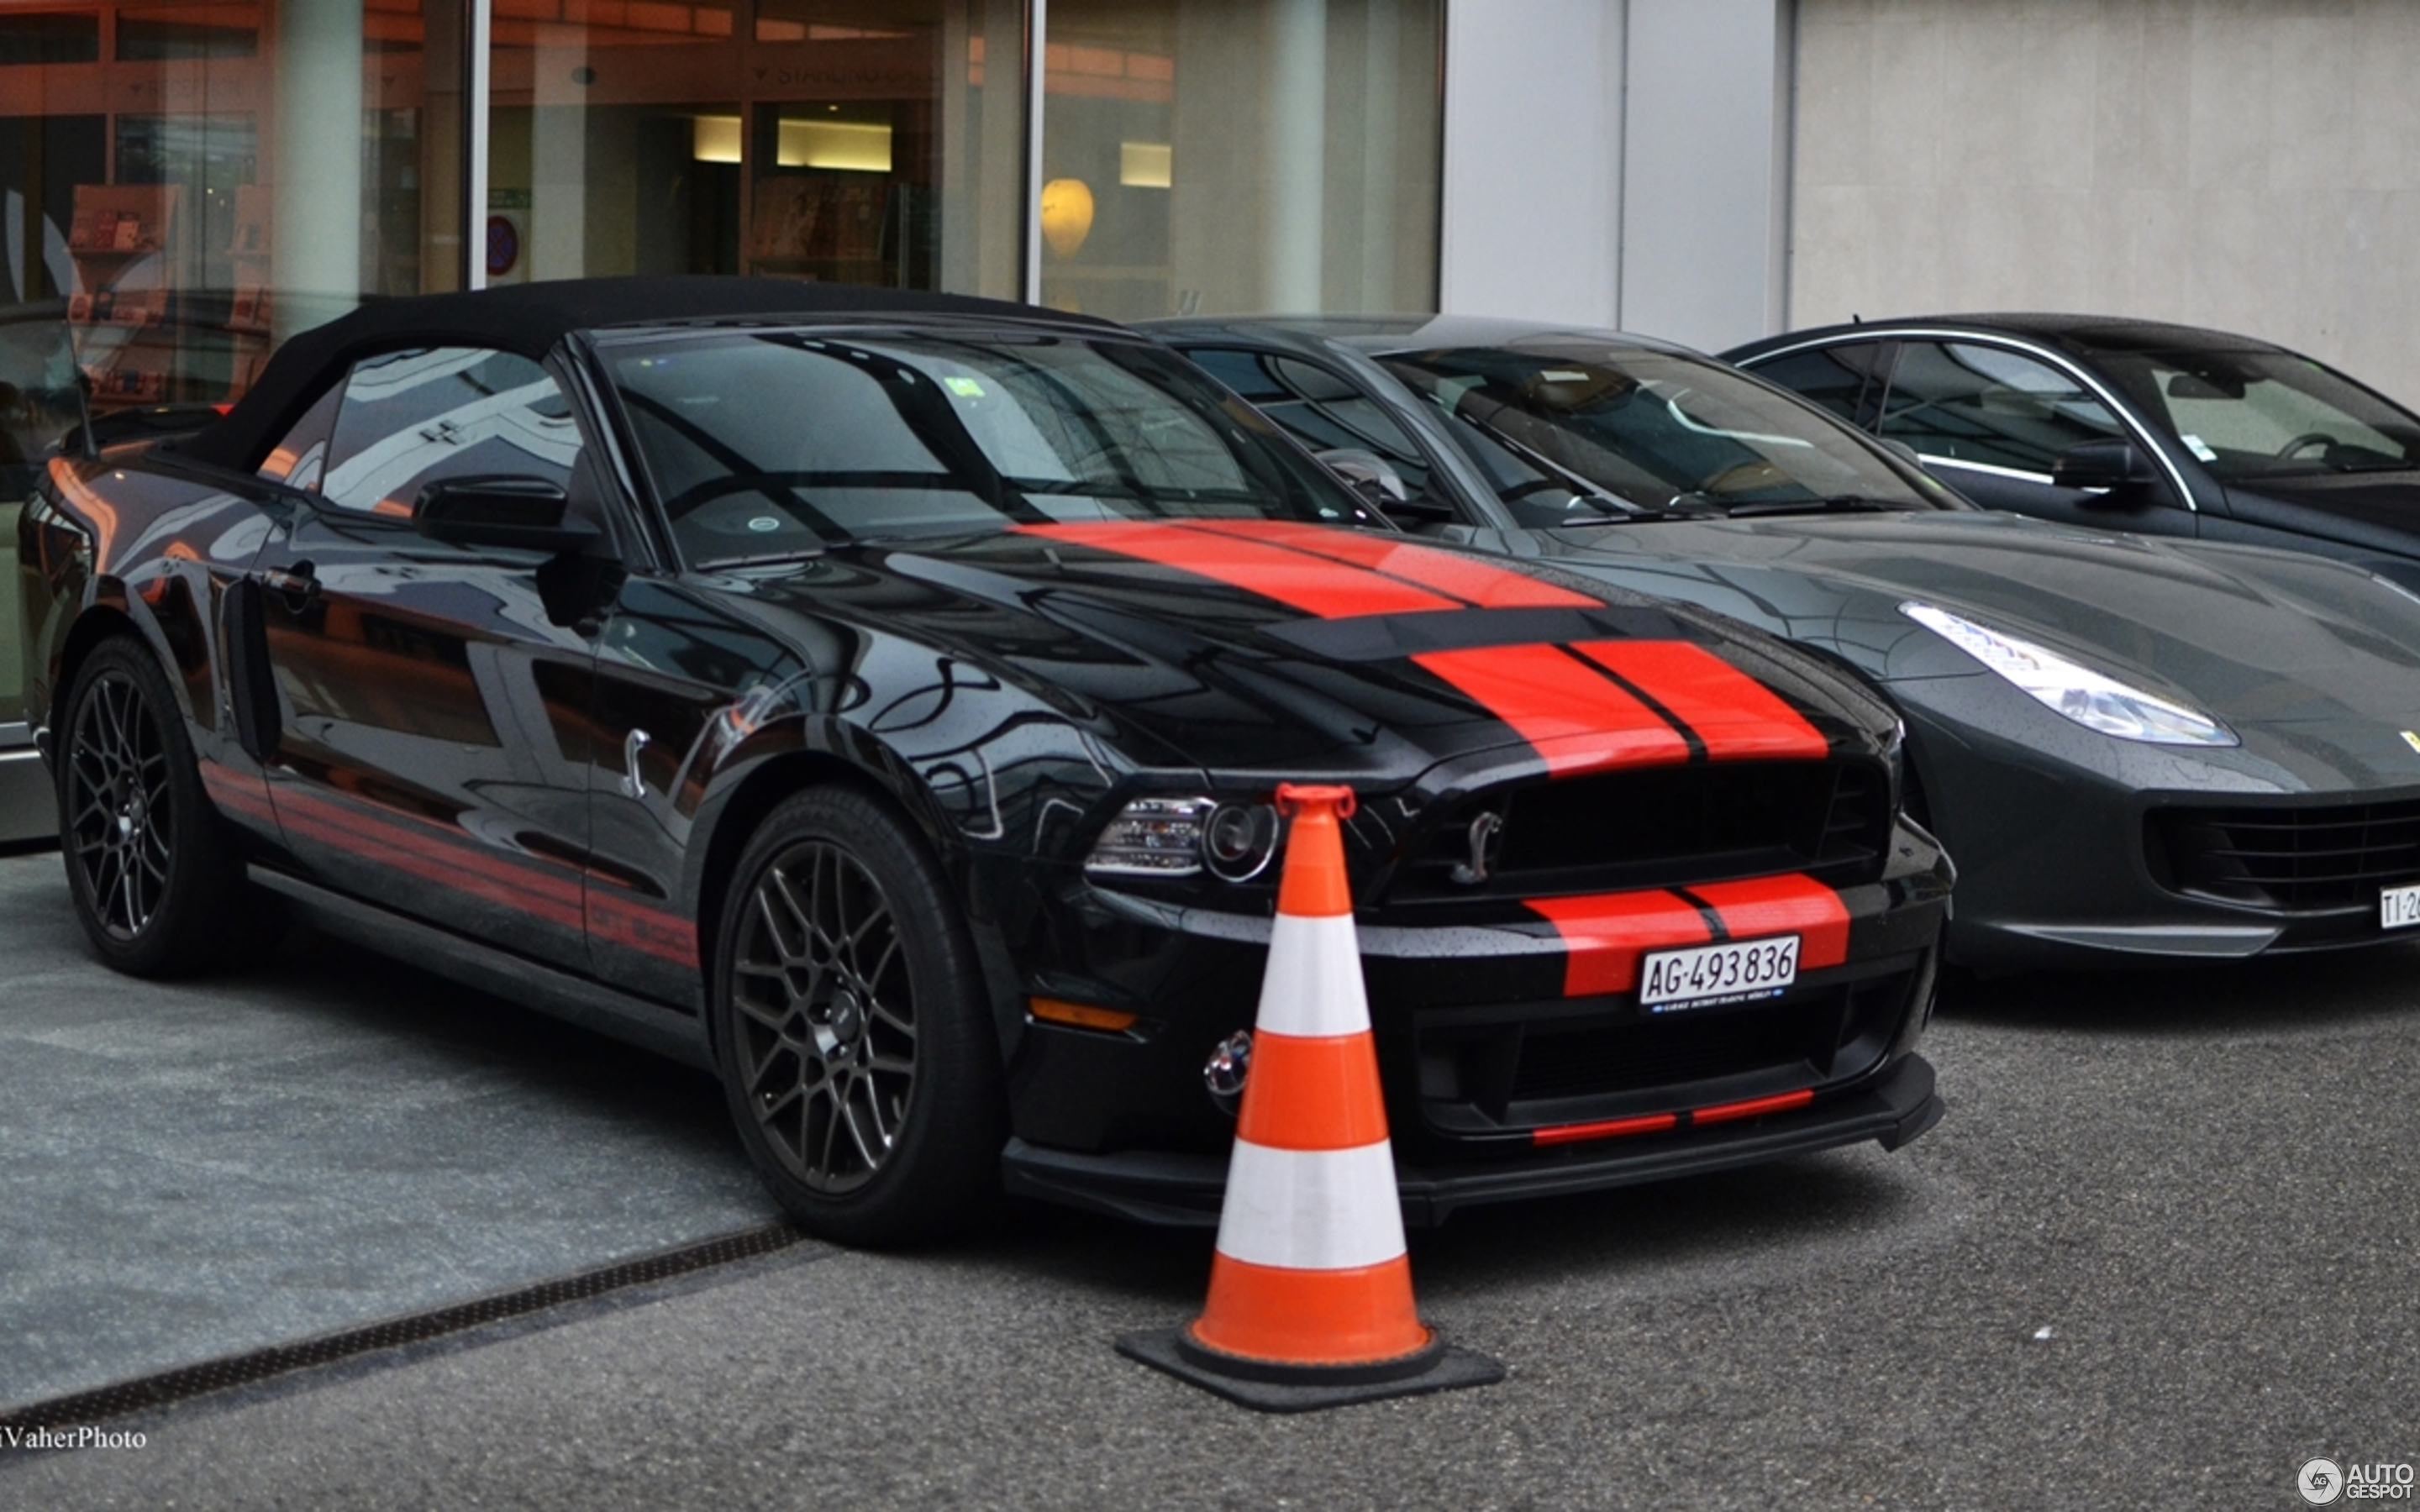 Ford Mustang Shelby Gt500 Convertible 2017 2 April